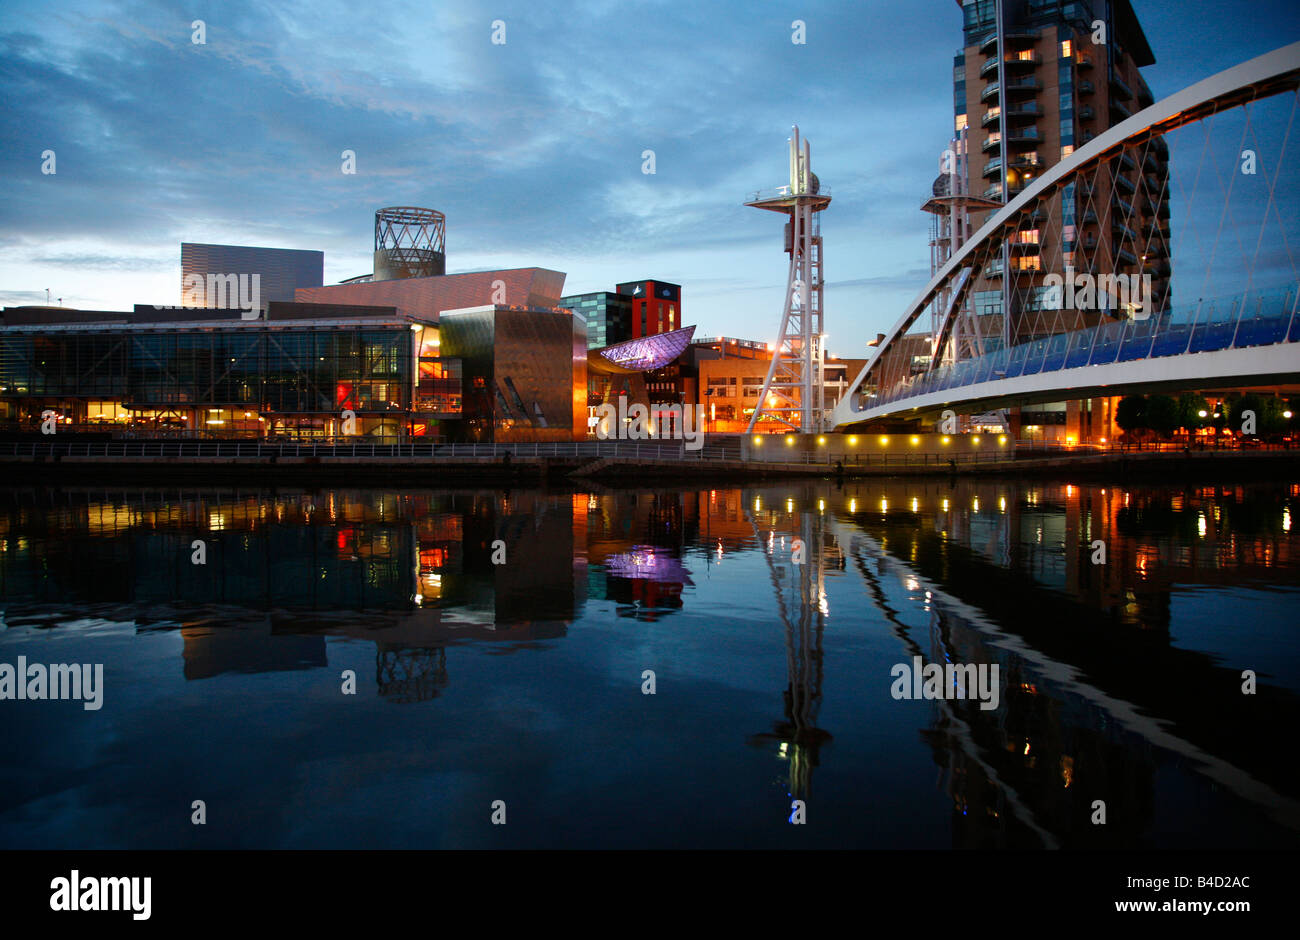 July 2008 - The millenium Bridge and Lowry at Salford Quays Manchester England UK - Stock Image